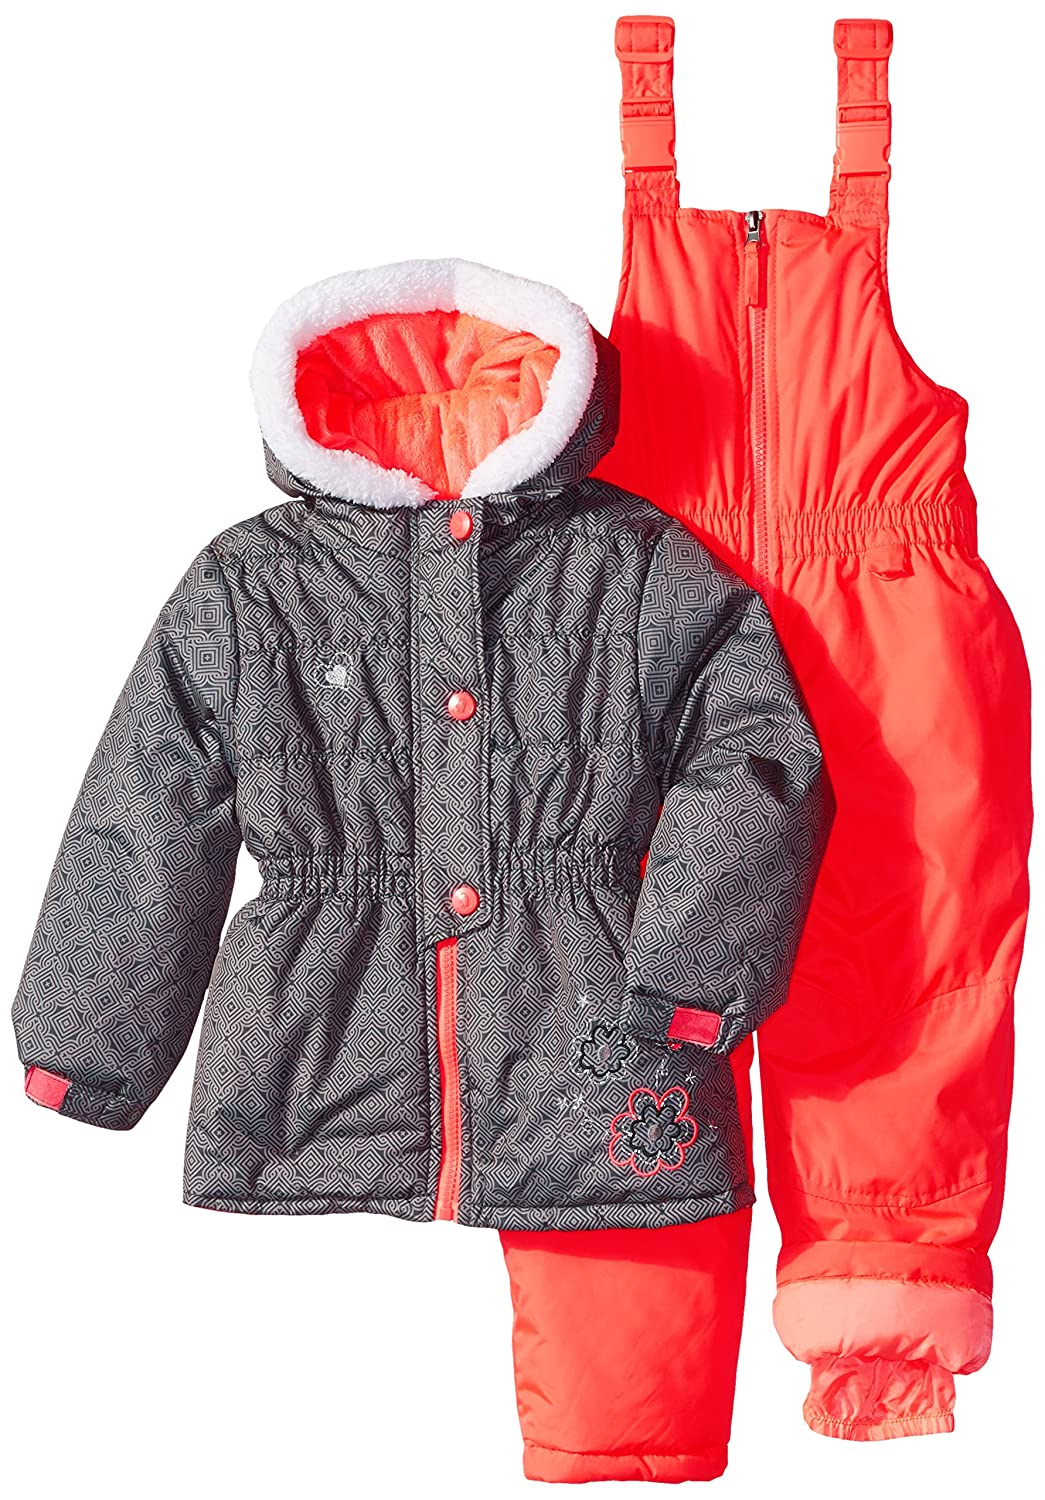 Rugged Bear girls Girls' Two-piece Snowsuit and Jacket Set With Flower Detail Rugged Bear Girls 2-6x RG88004